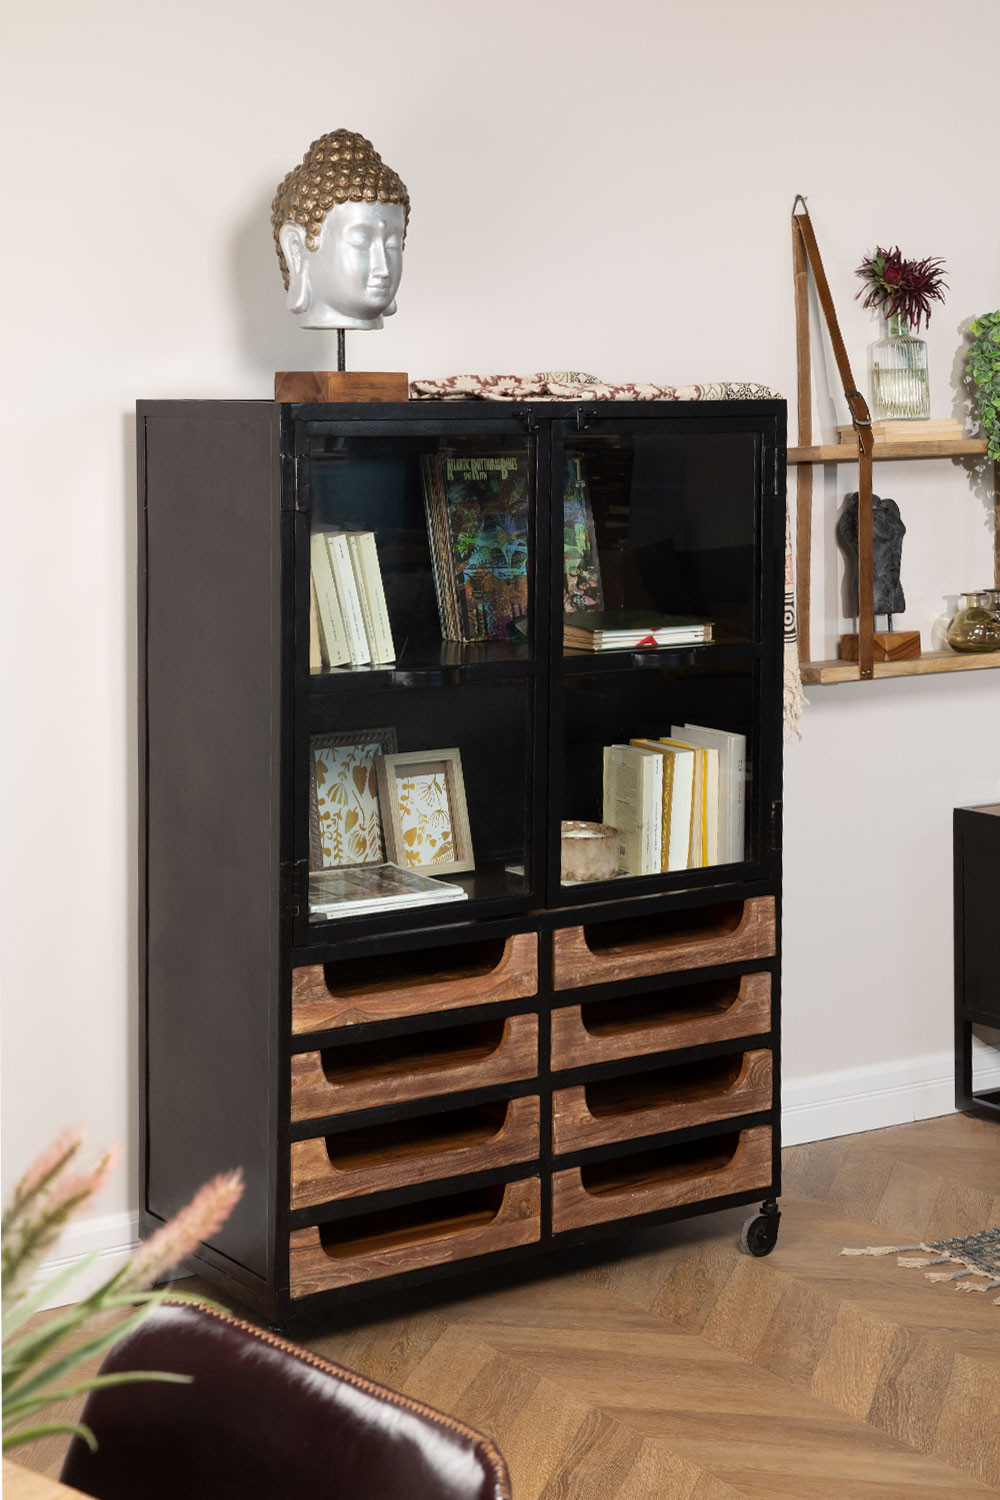 Emberg Wooden Display Cabinet with Drawers, gallery image 1